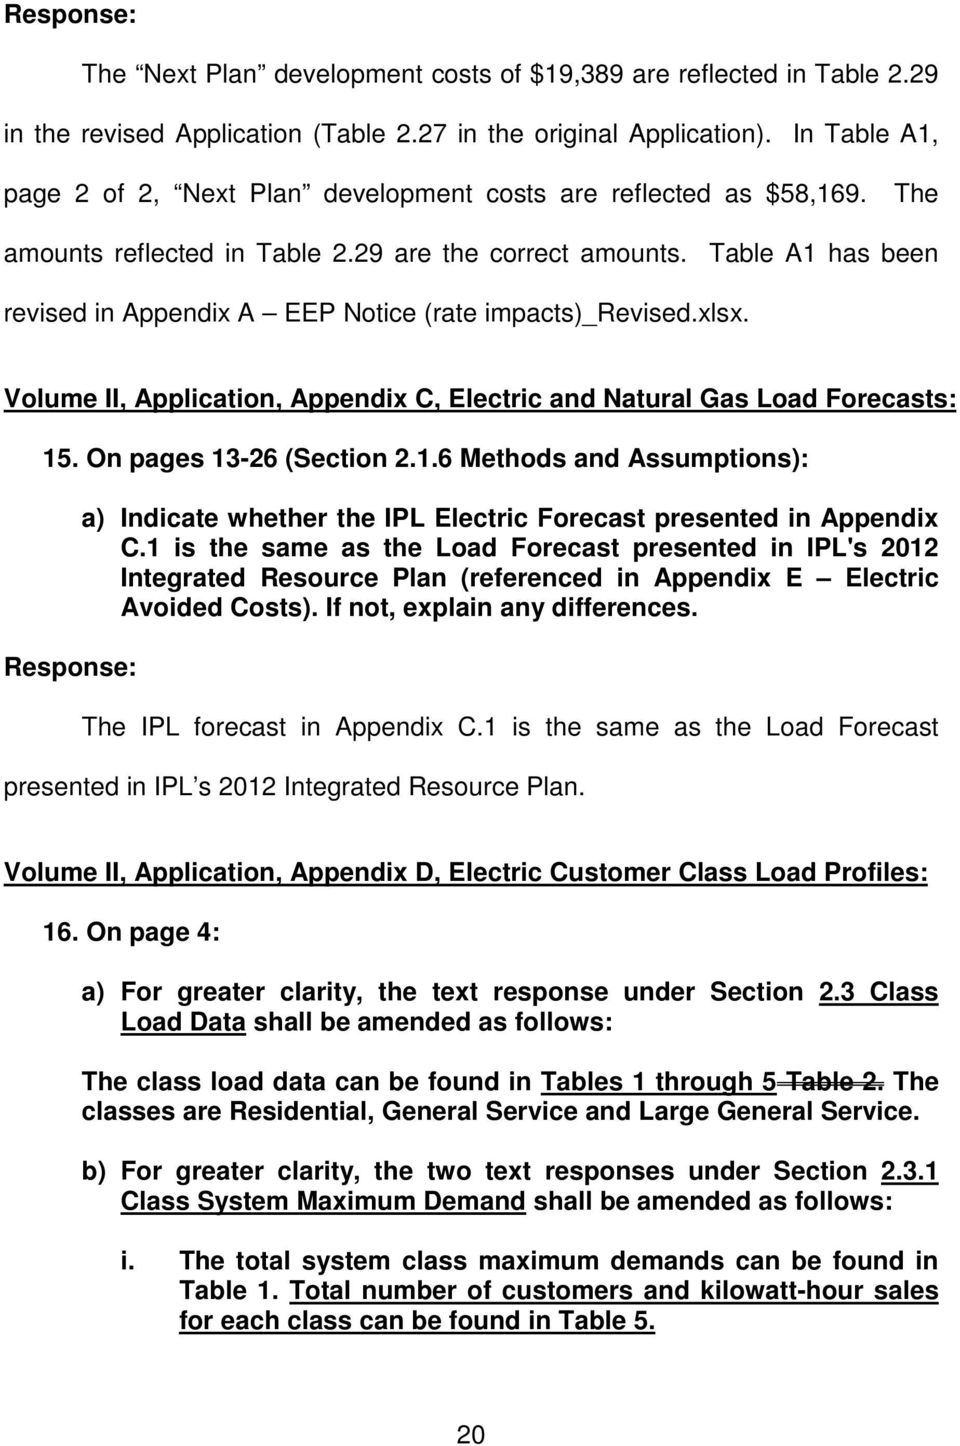 Table A1 has been revised in Appendix A EEP Notice (rate impacts)_revised.xlsx. Volume II, Application, Appendix C, Electric and Natural Gas Load Forecasts: 15. On pages 13-26 (Section 2.1.6 Methods and Assumptions): Response: a) Indicate whether the IPL Electric Forecast presented in Appendix C.